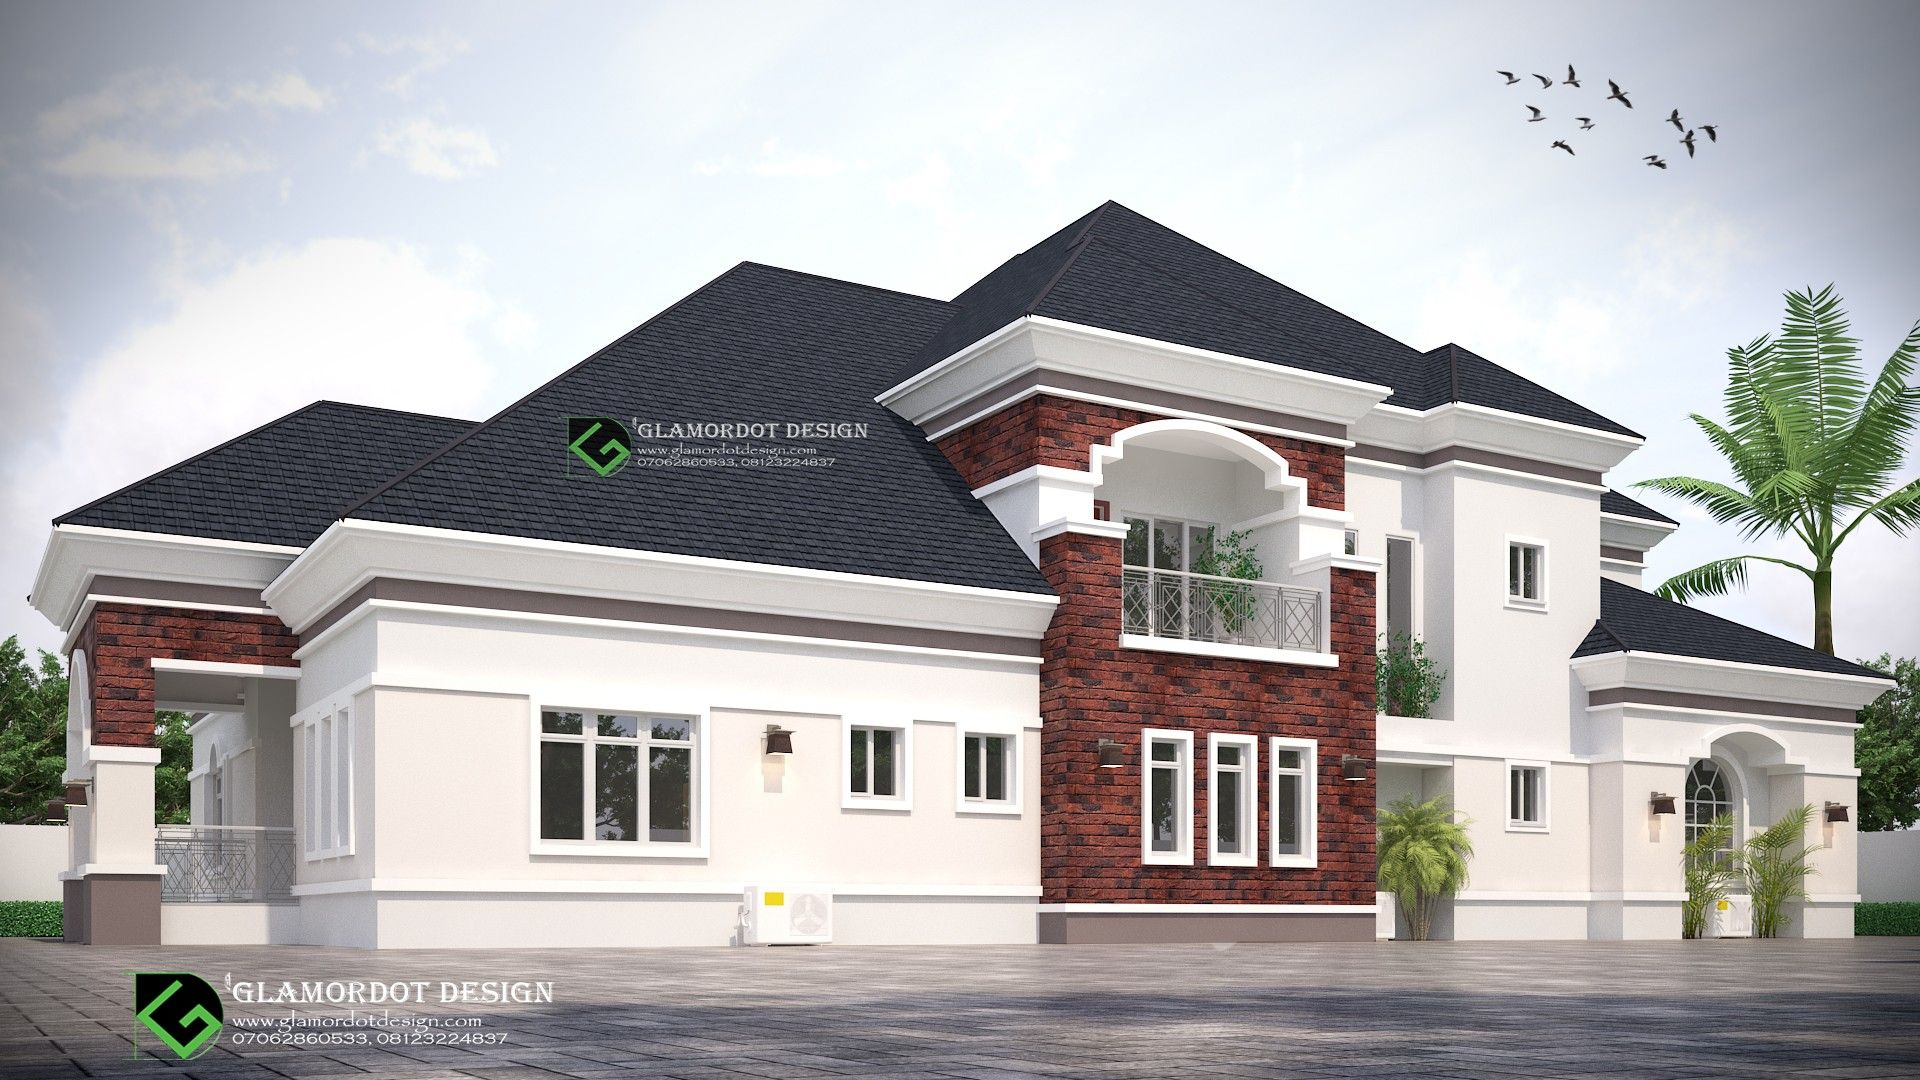 Architectural Design Of A Proposed 5 Bedroom Bungalow With A Pent